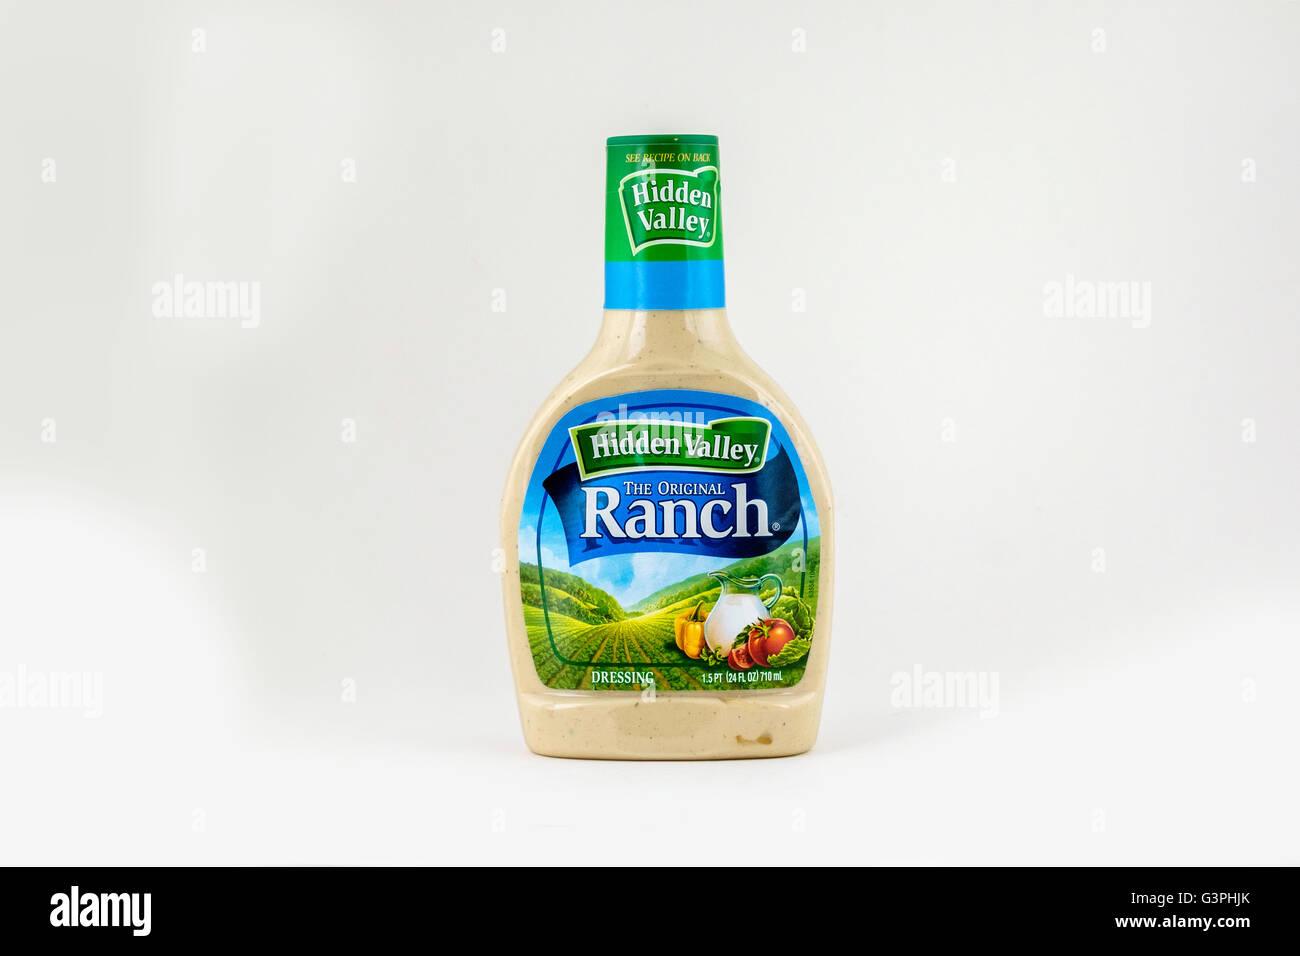 A plastic bottle of Hidden Valley Ranch dressing, isolated on white. Stock Photo